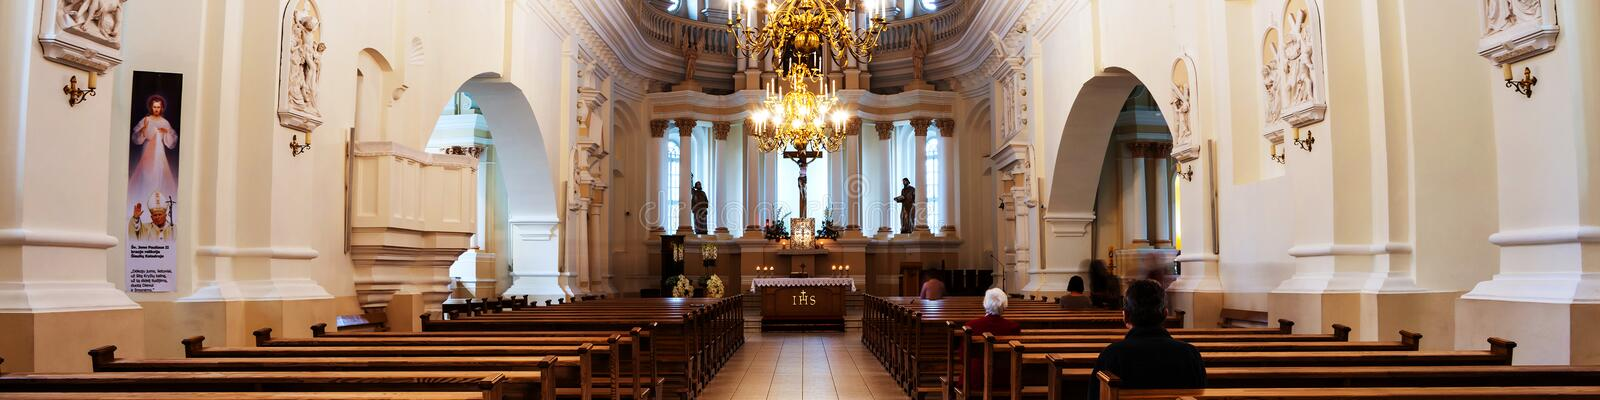 Inside St Peter and Paul Cathedral in Siauliai, Lithuania. SIAULIAI, LITHUANIA - SEPTEMBER 4, 2016: Inside St Peter and Paul Cathedral in Siauliai, Lithuania royalty free stock images